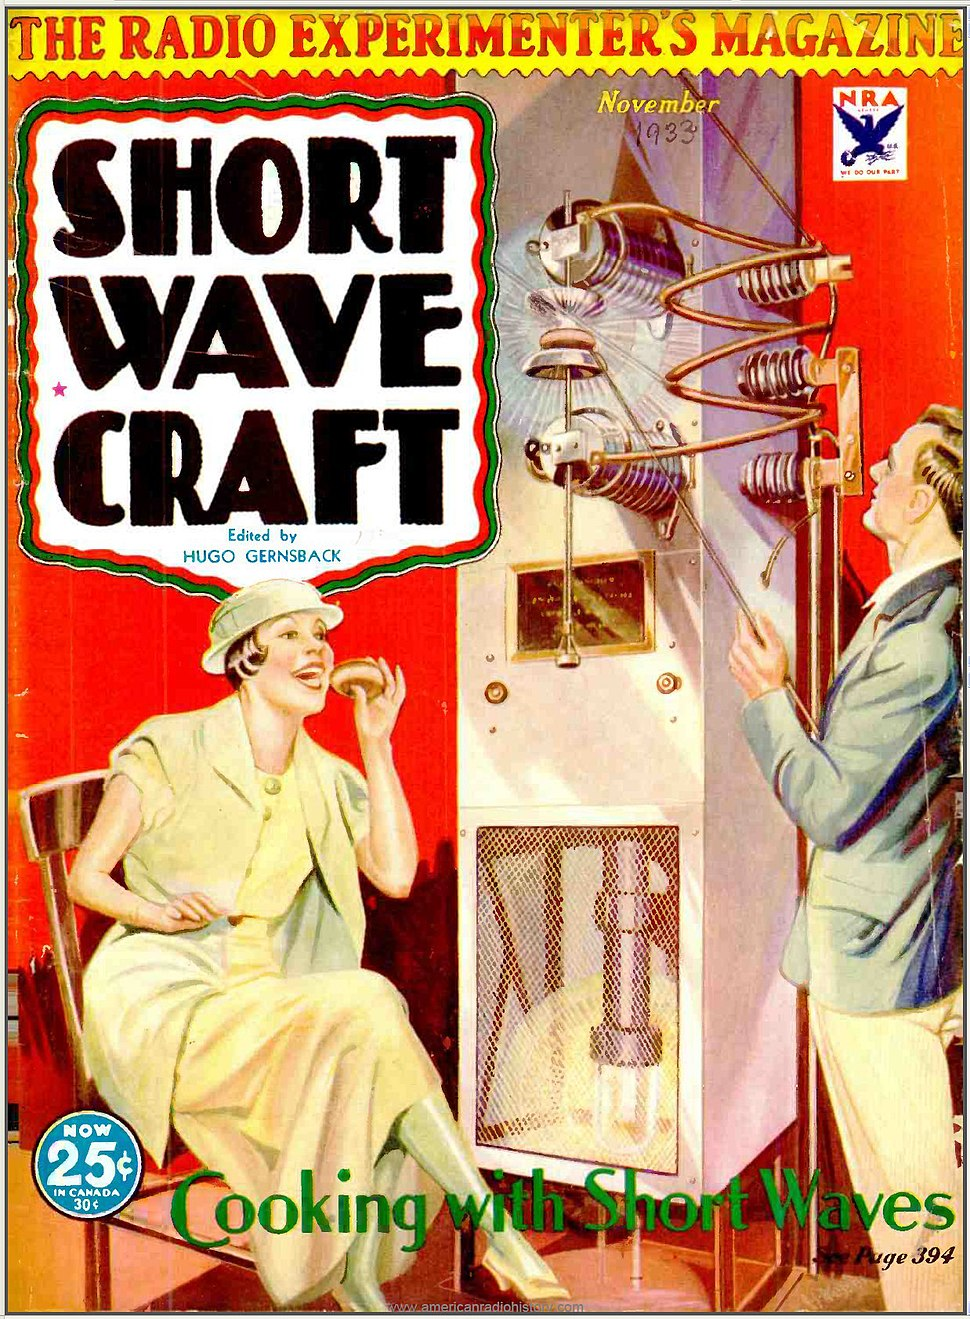 Cooking with radio waves - Short Wave Craft Nov 1933 cover